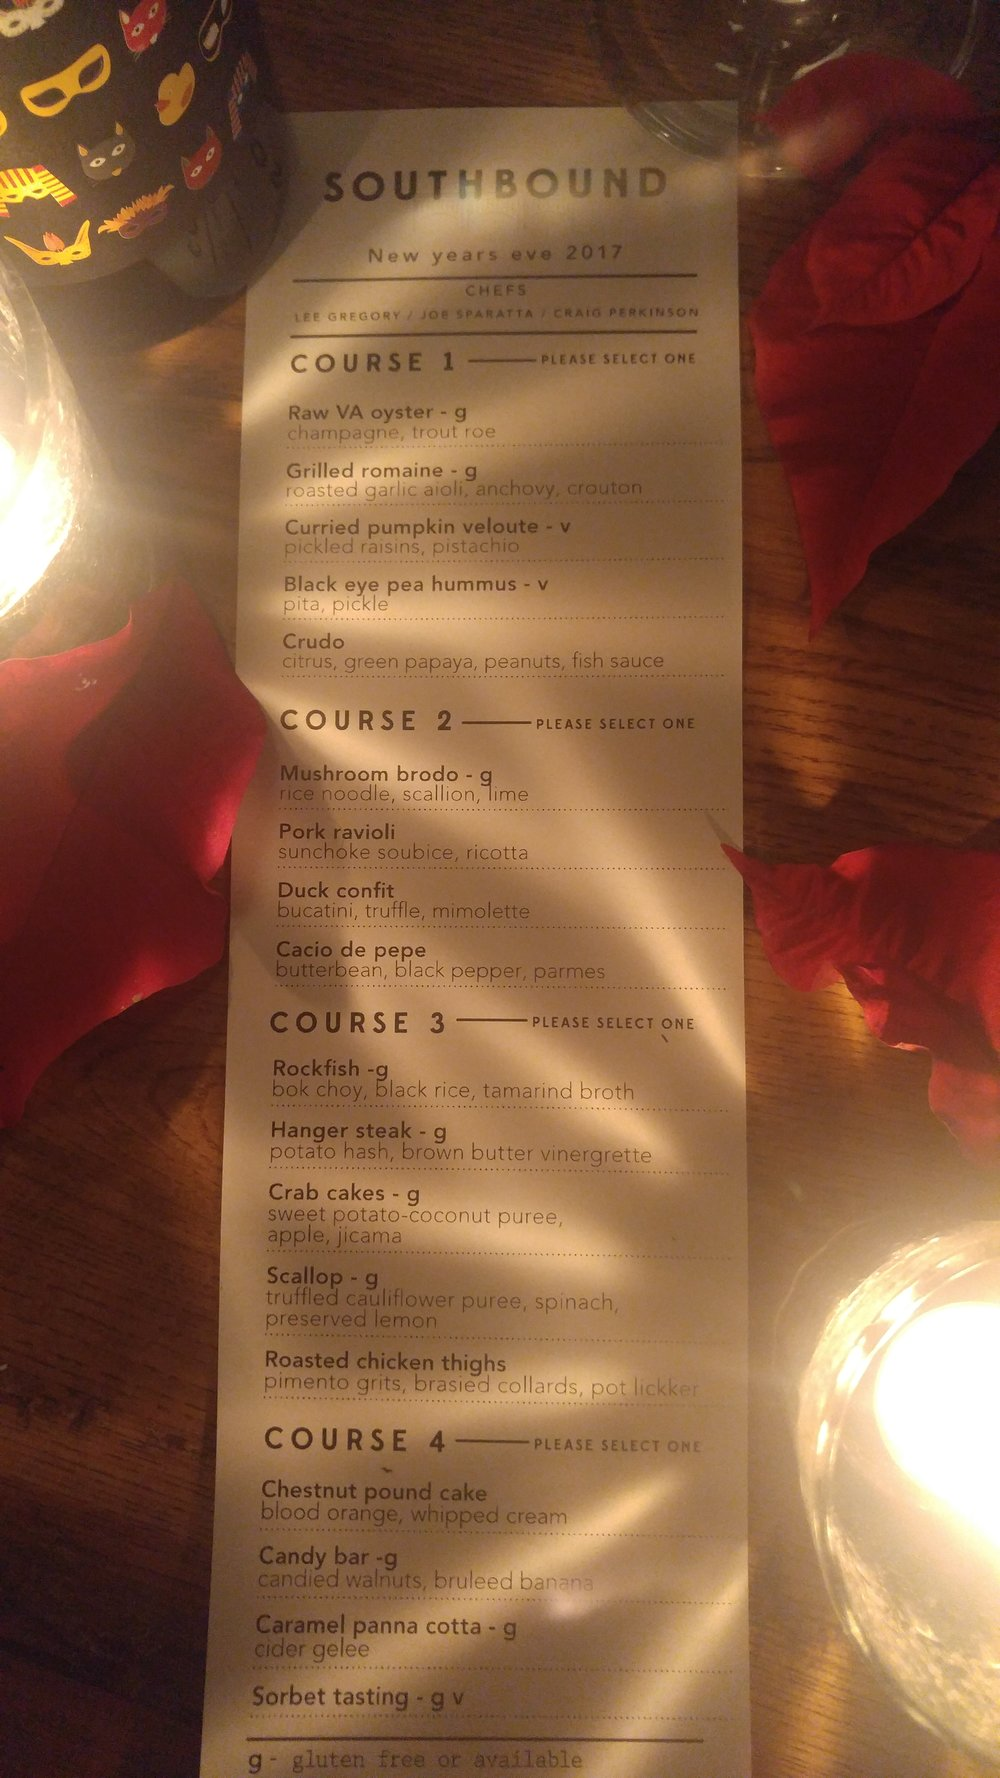 New Years eve menu pic.jpg